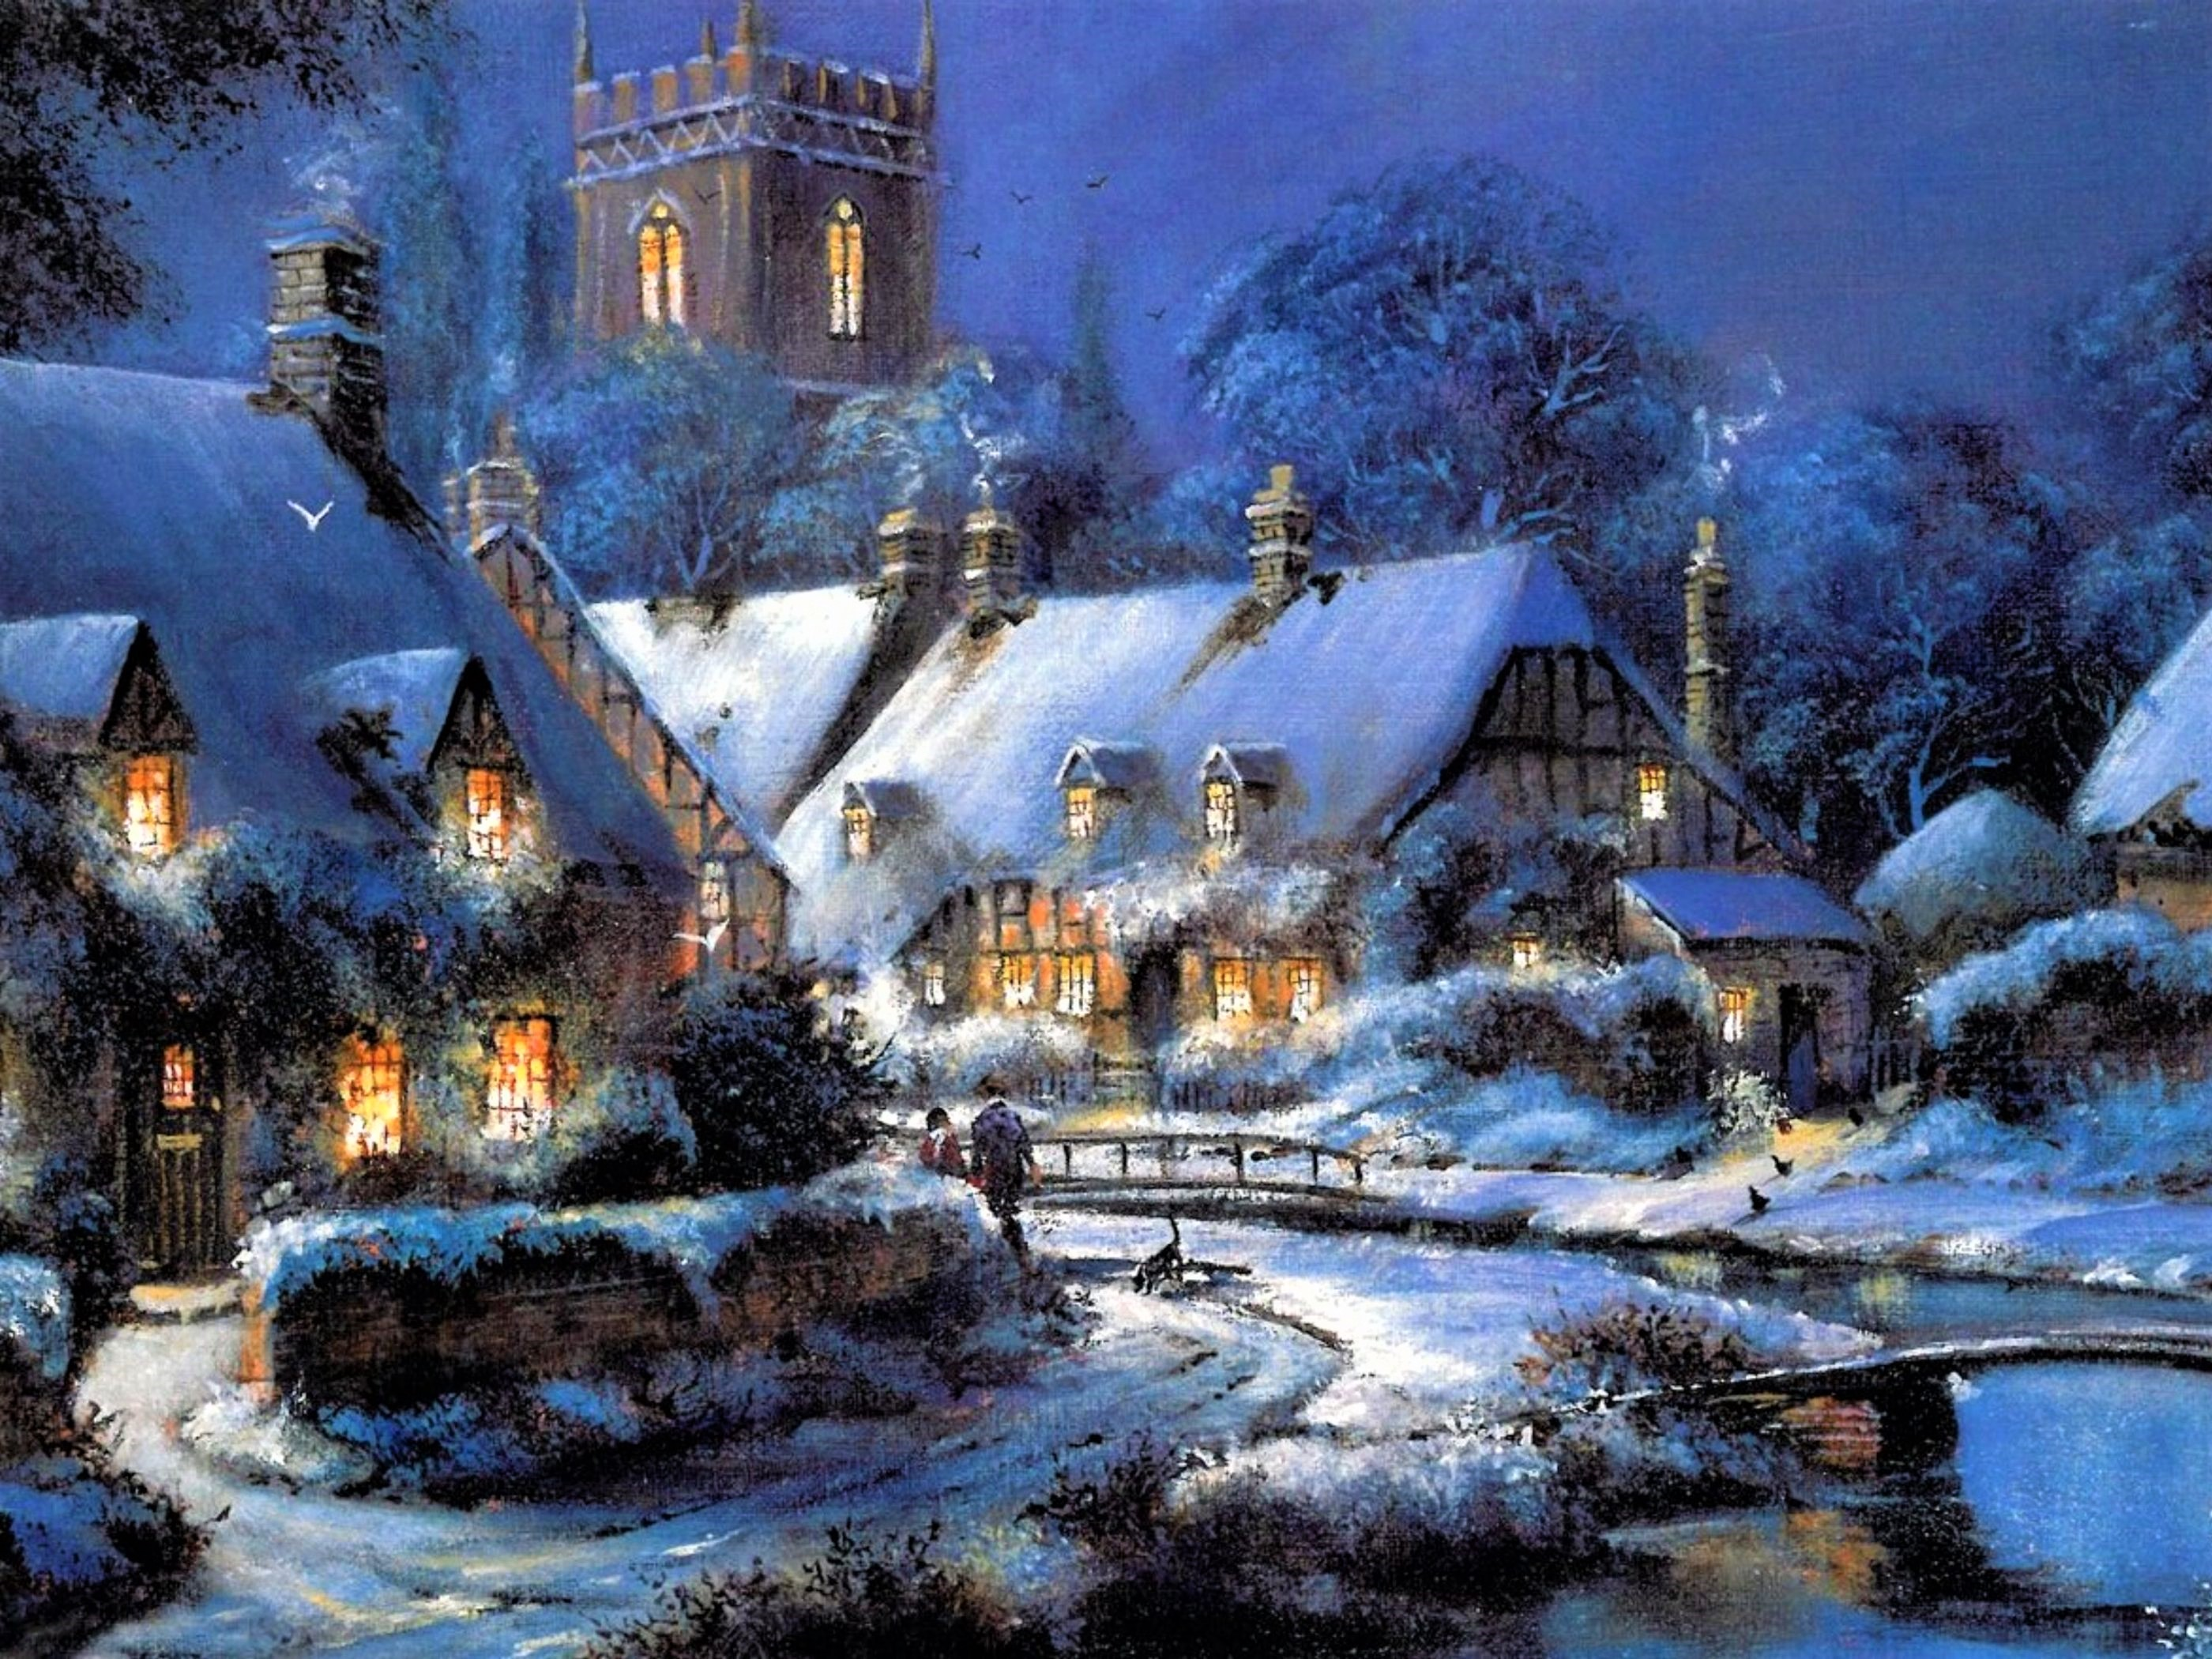 Winter village hd wallpaper background image 2800x2100 for Sfondi natalizi 1920x1080